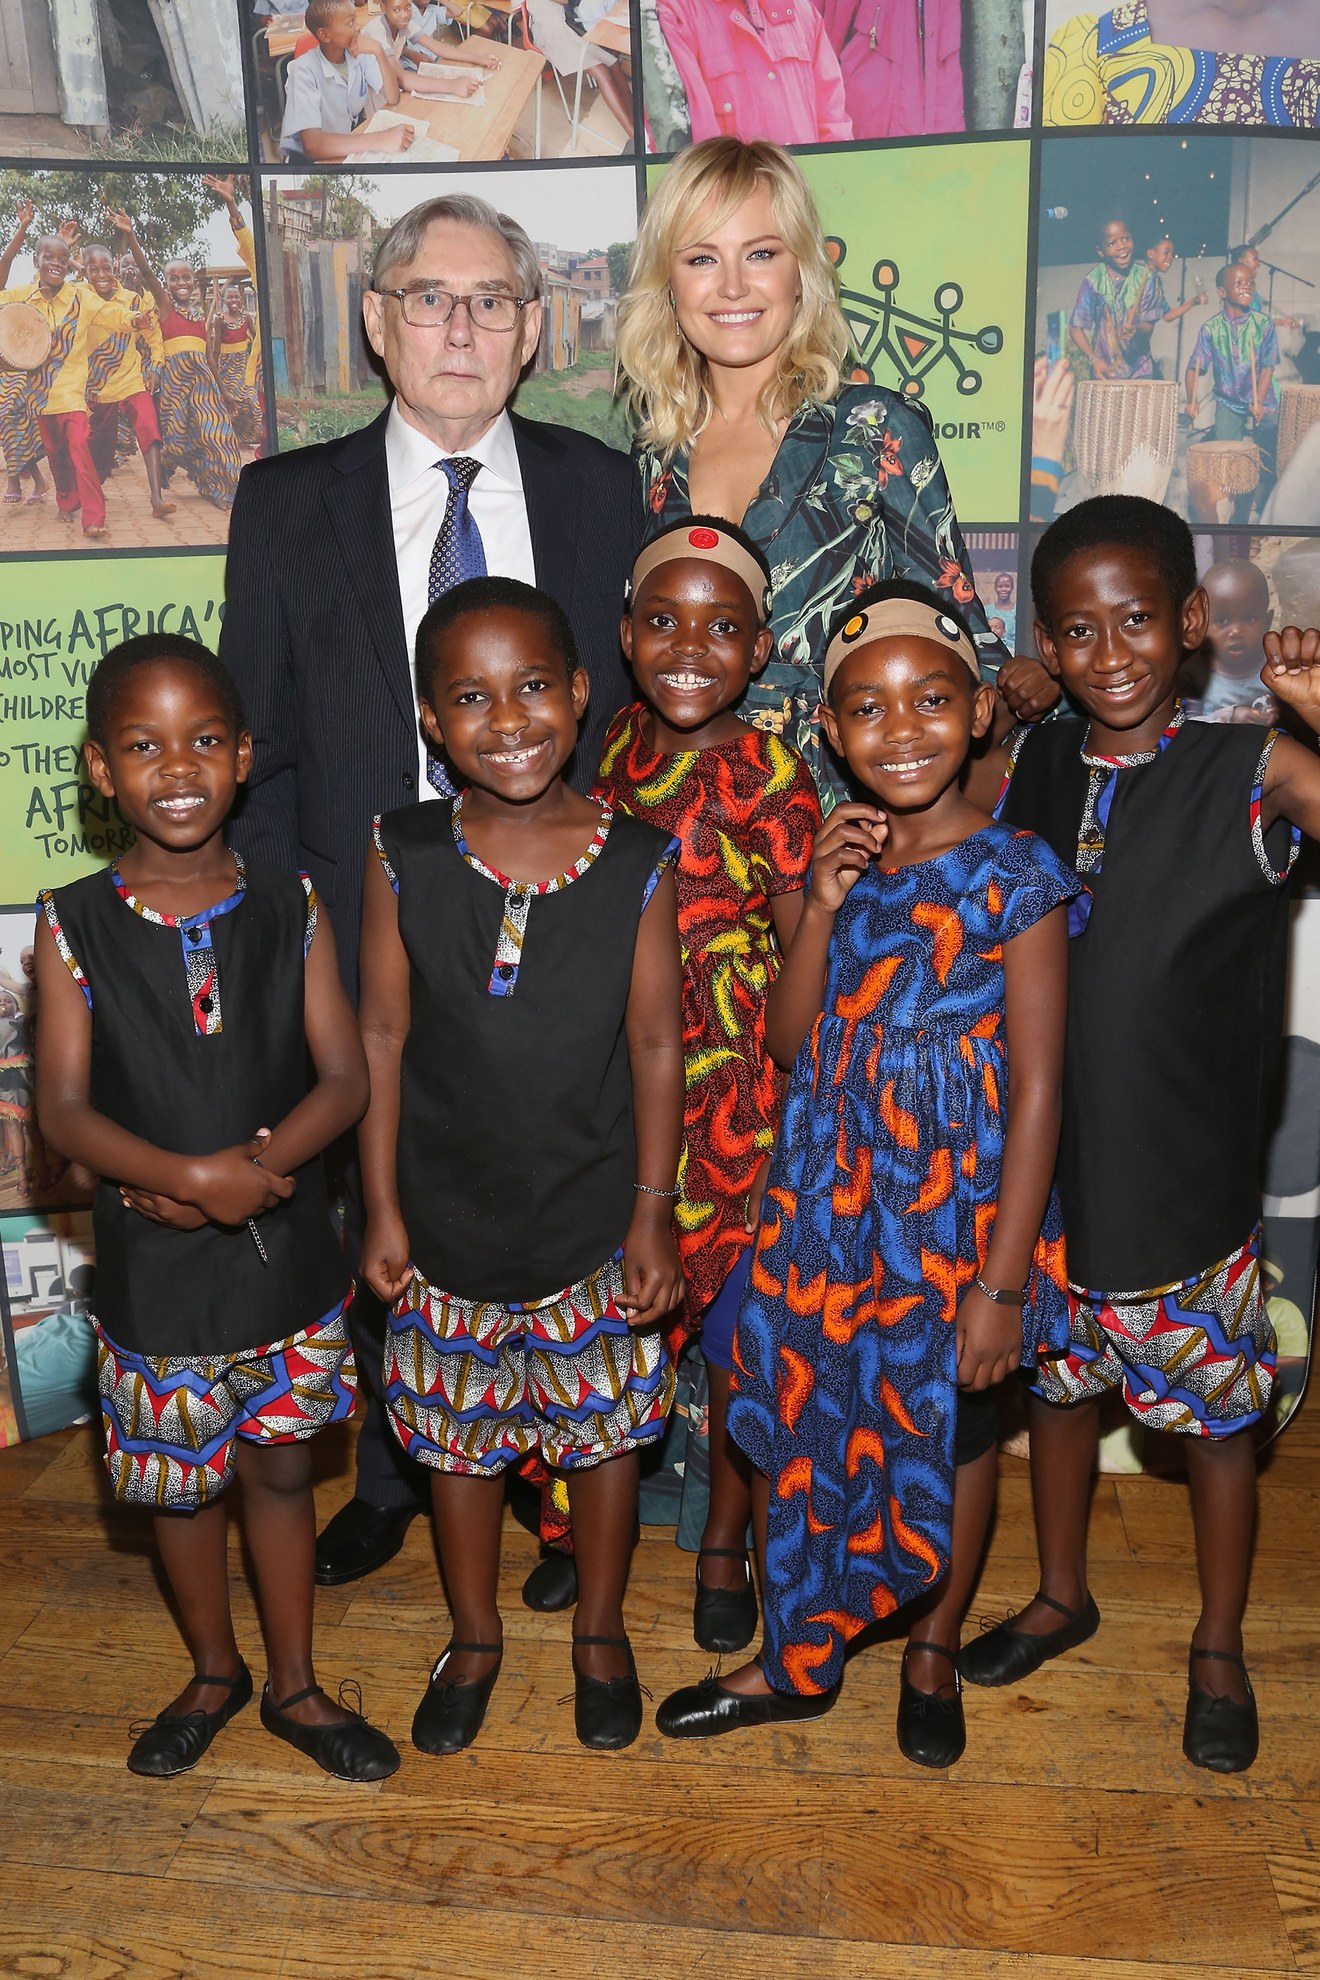 00-story-the-african-childrens-choir-dinner